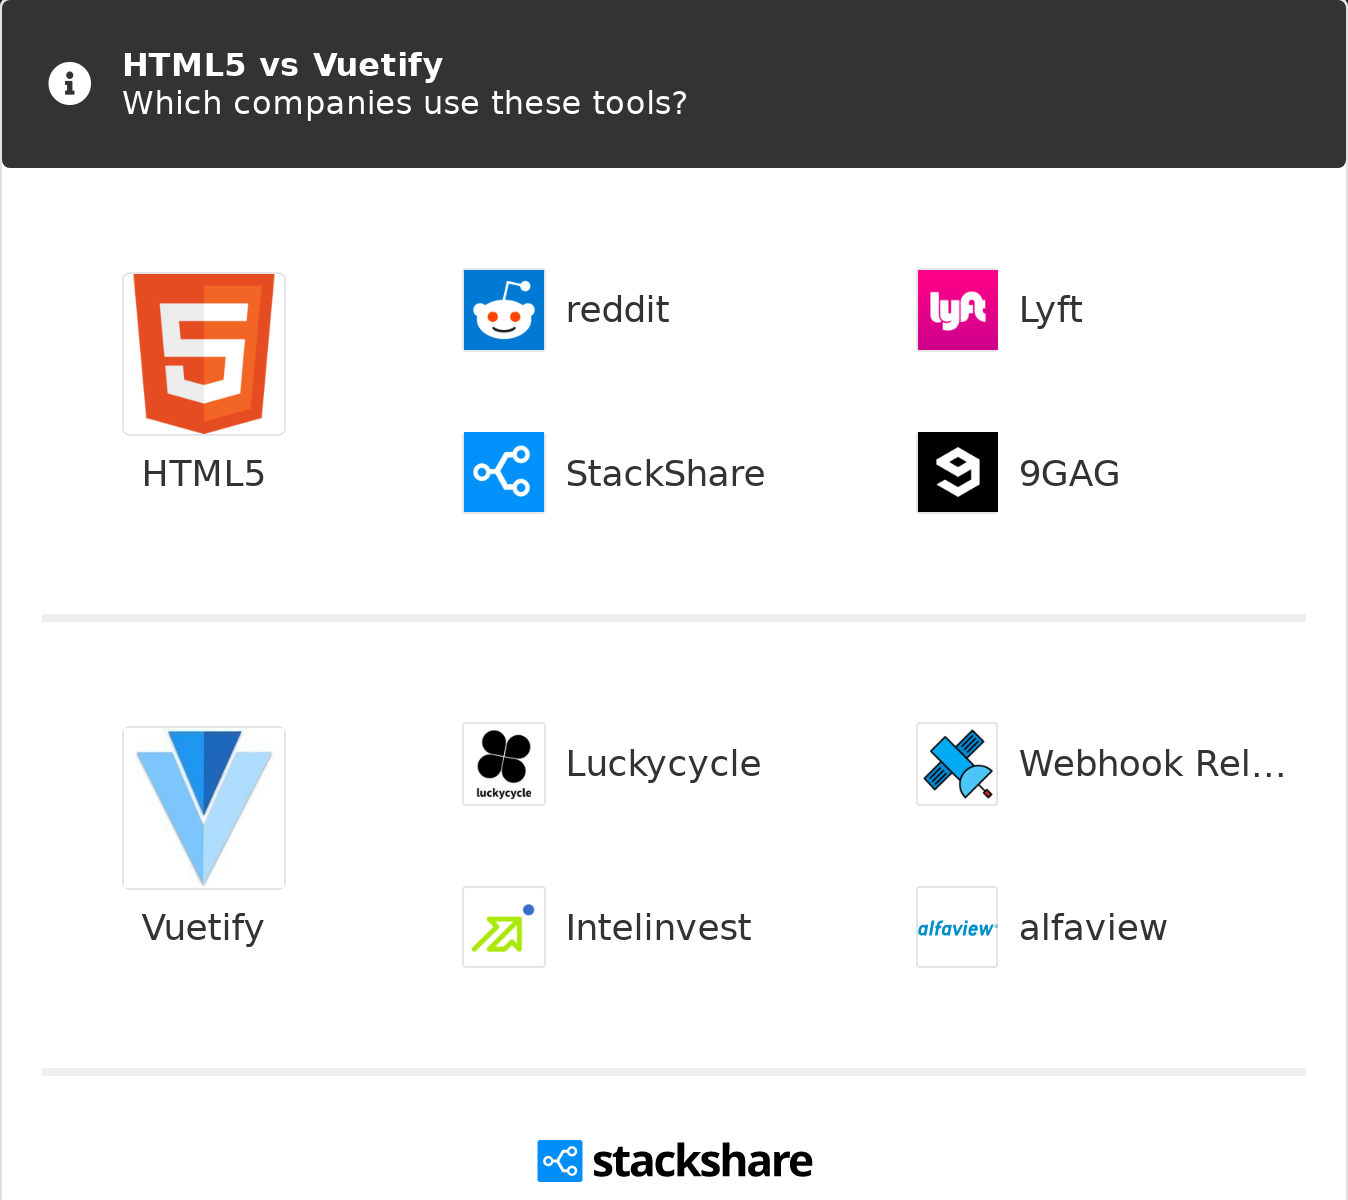 HTML5 vs Vuetify | What are the differences?